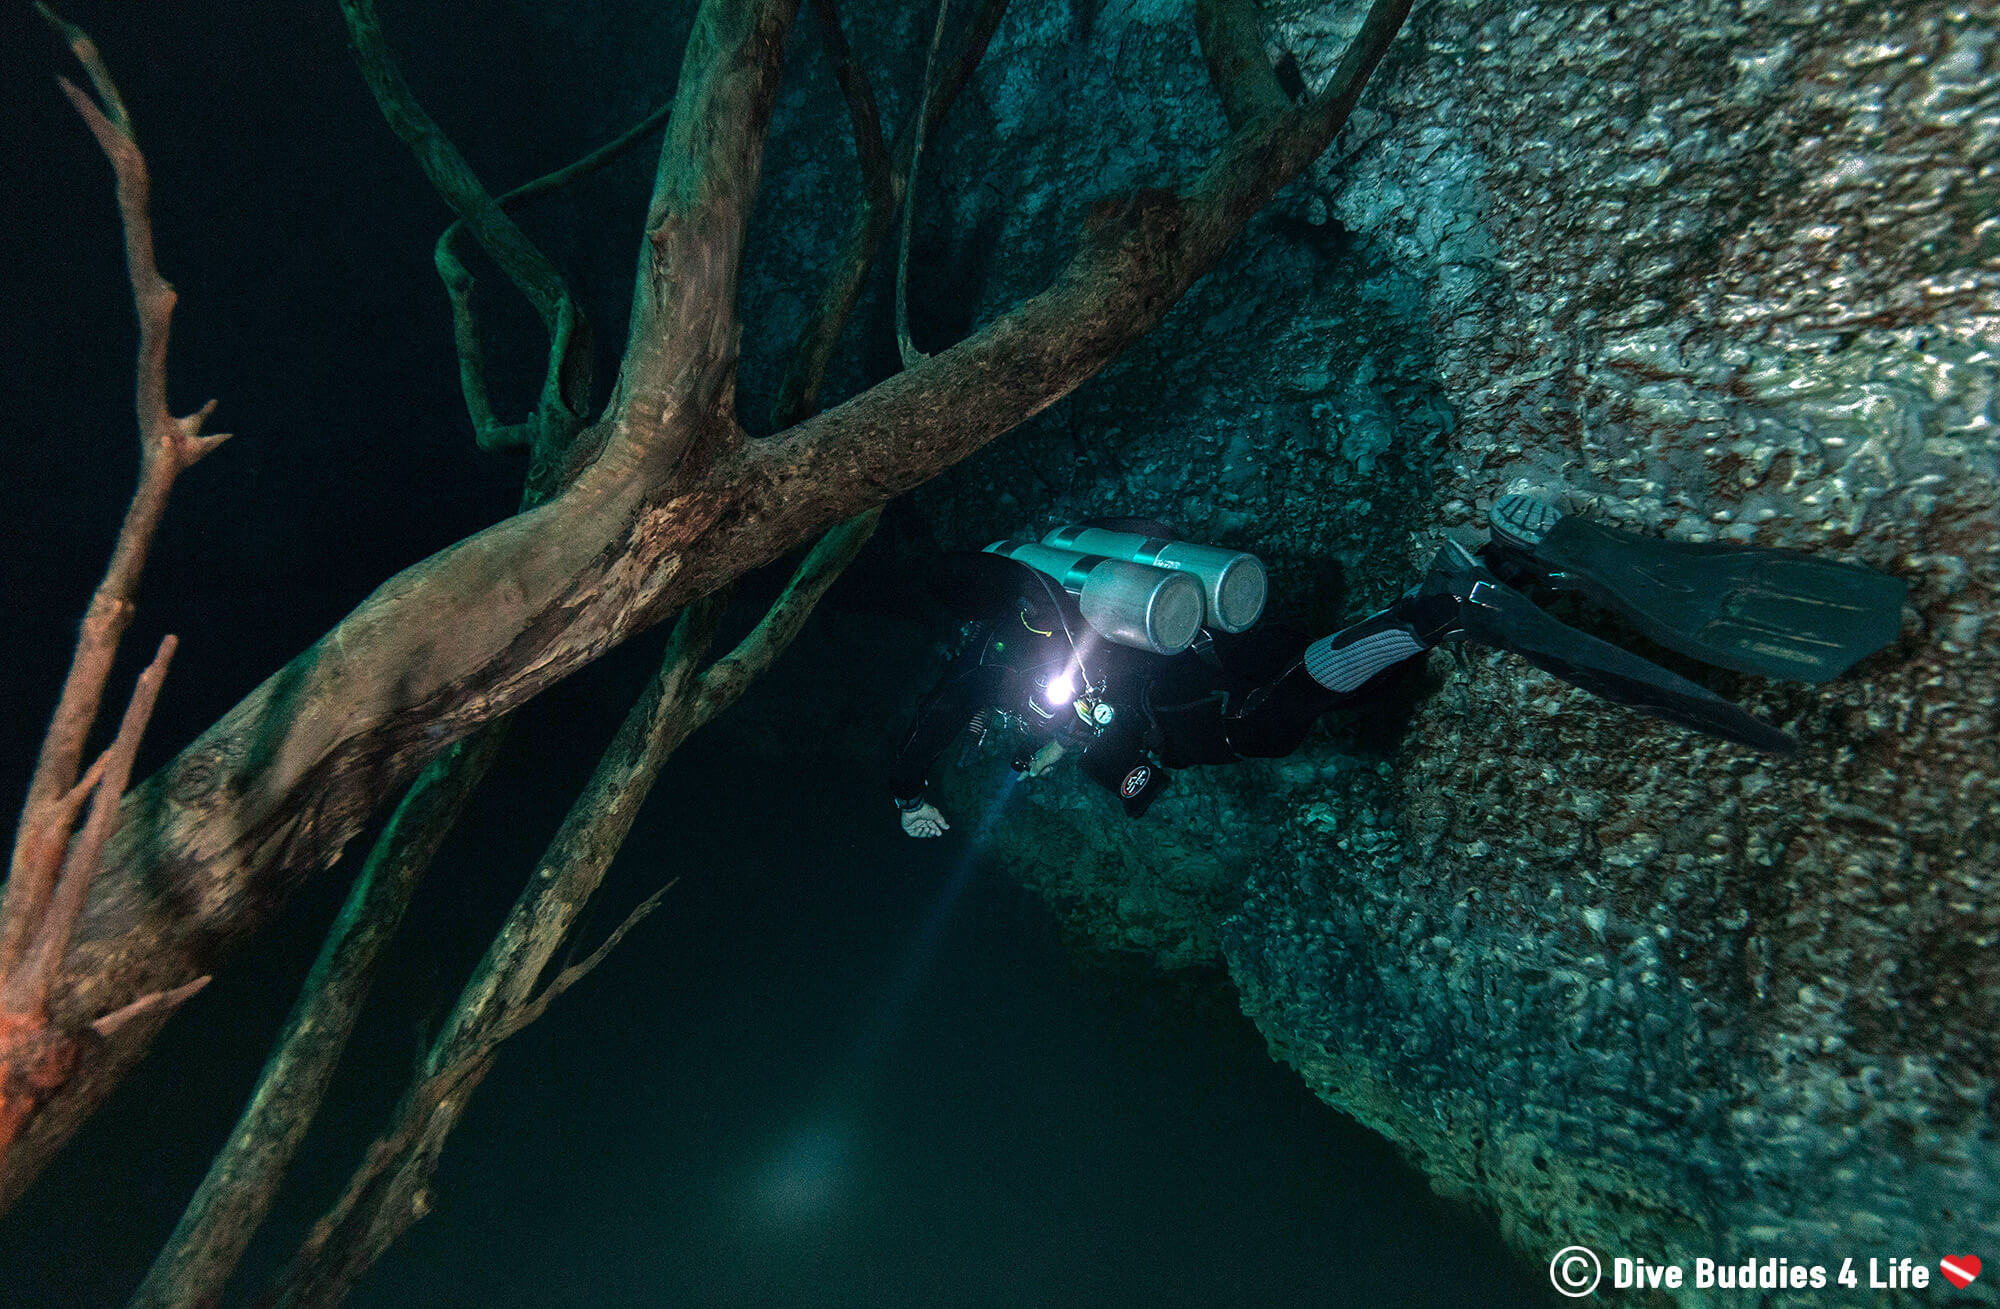 A Tech Diver Above The Halocline In Cenote Angelita, Tulum Cavern Diving, Mexico